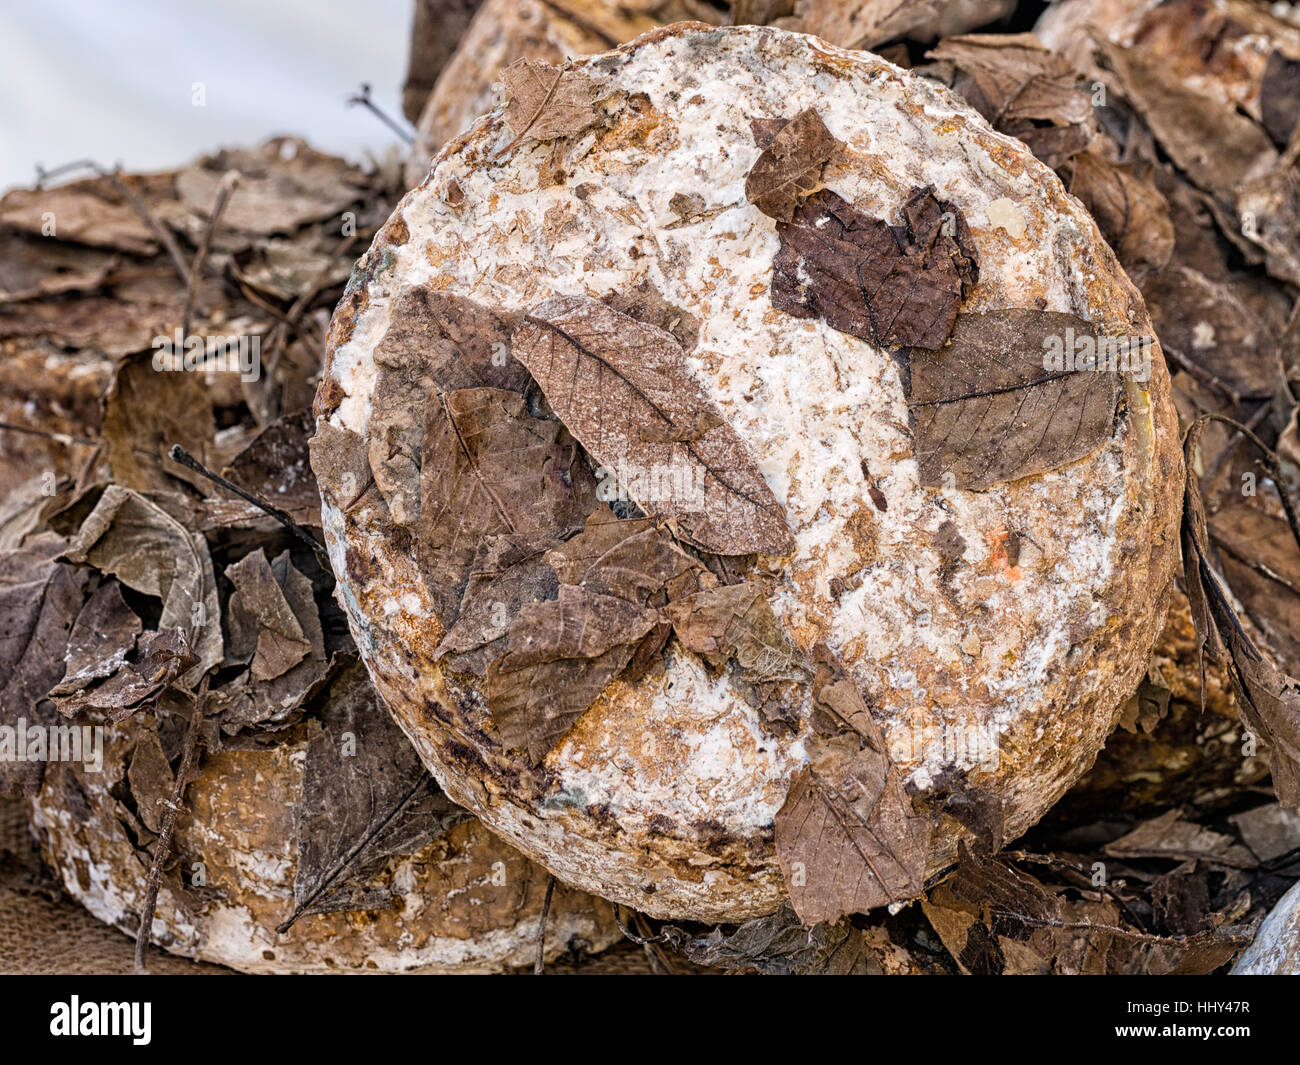 Rustic artisan cheese, matured in nut leaves. Italy. Note narrow depth of field in photo. - Stock Image